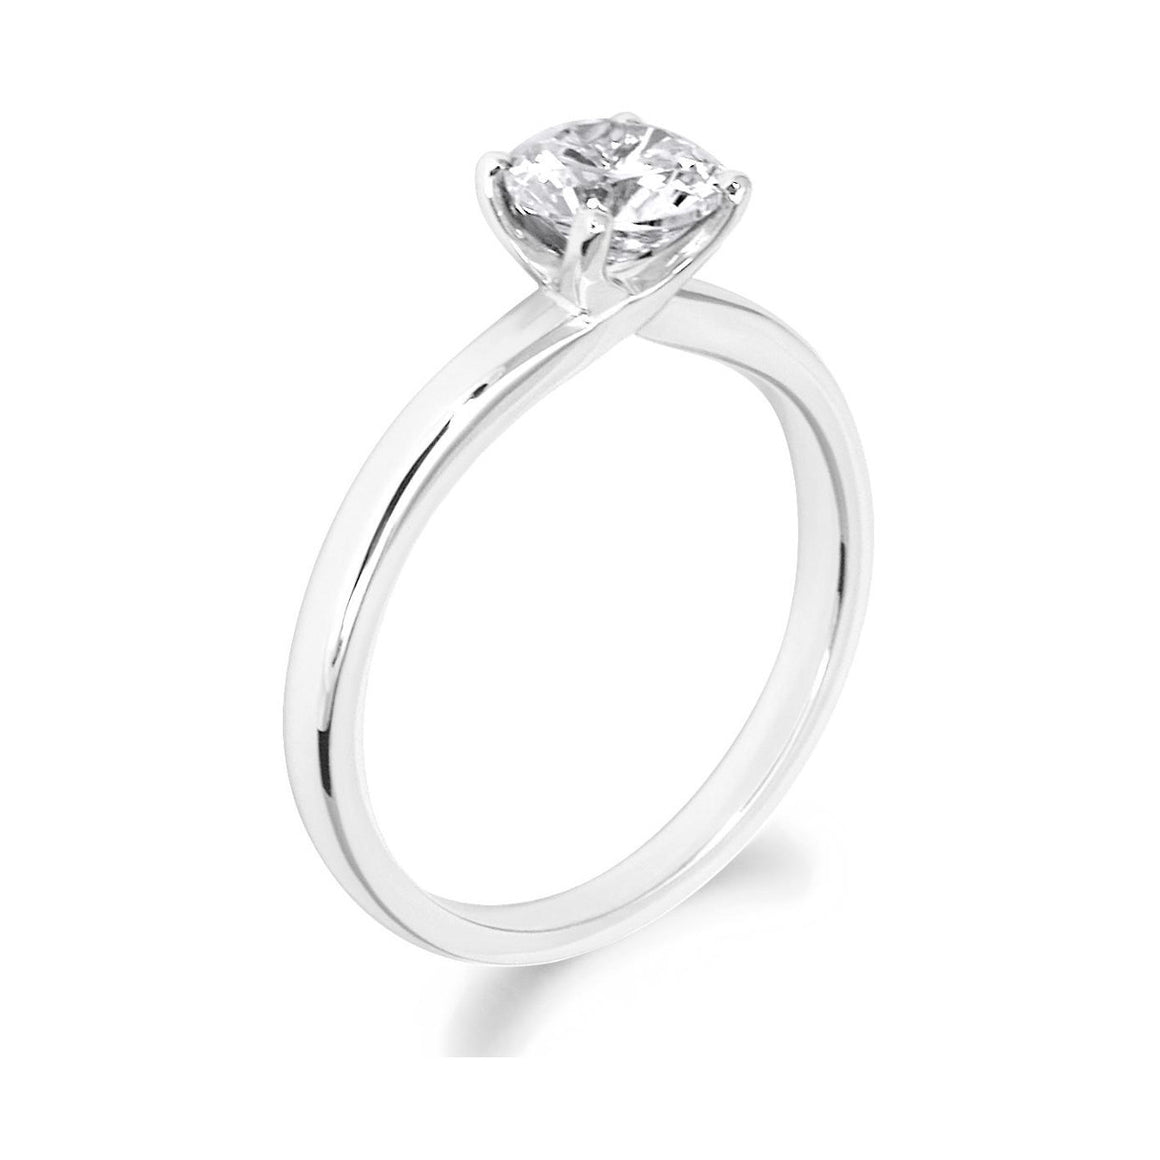 4 Claw Crossover Style Brilliant Cut 18ct White Gold Solitaire